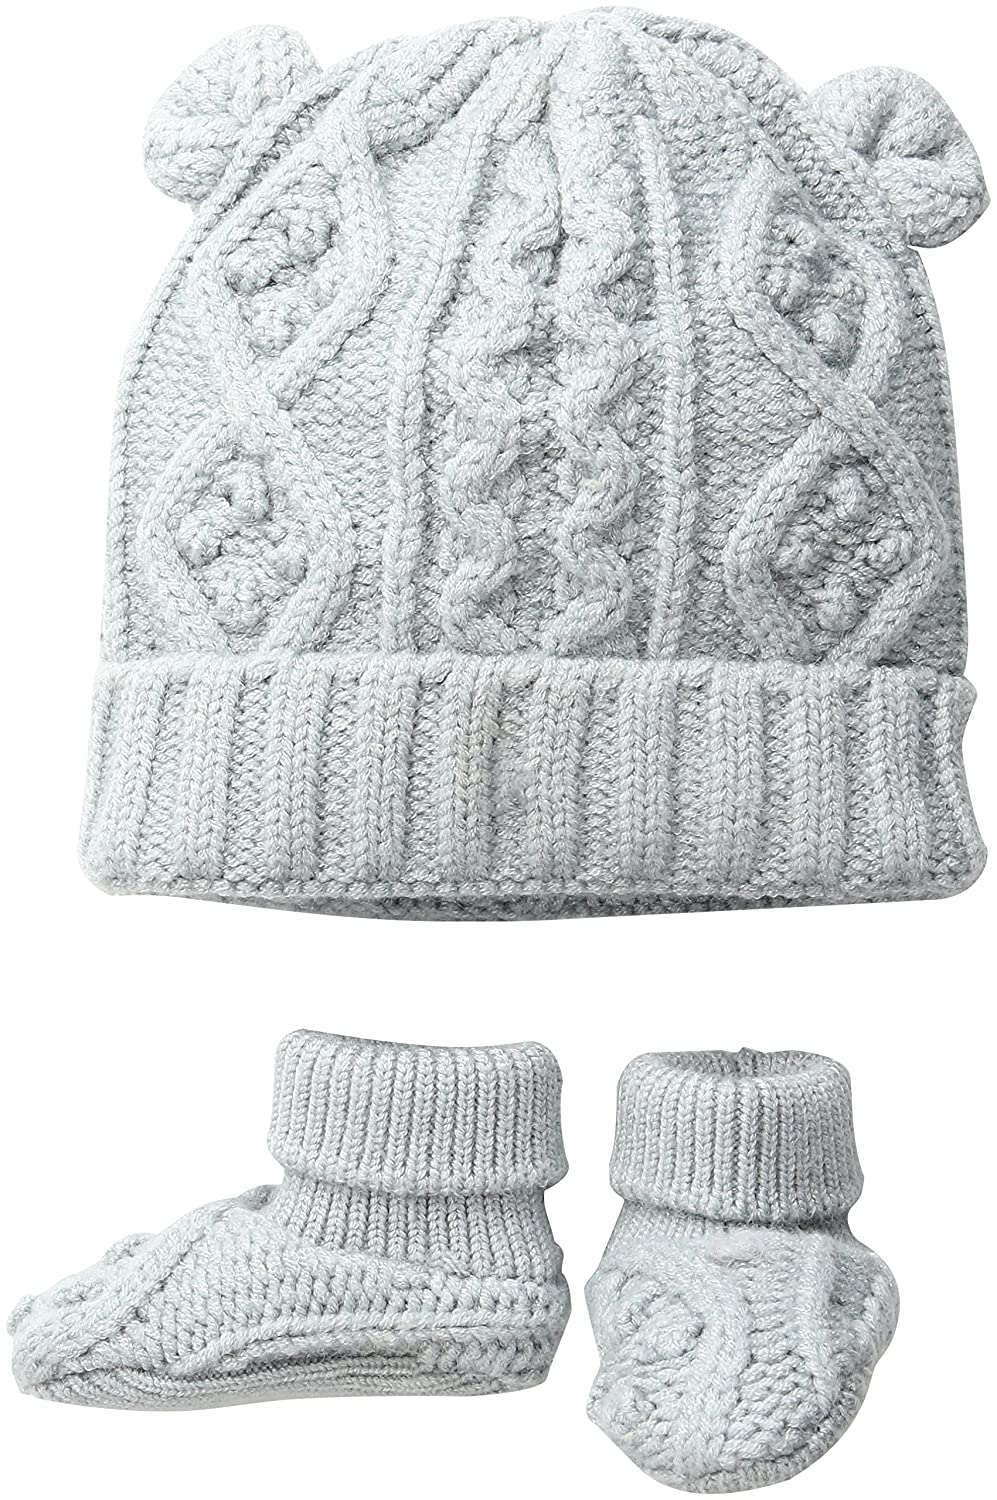 Amazon.com: TOBY Company Baby Nygb Cable Knit Hat and Booties Set ...